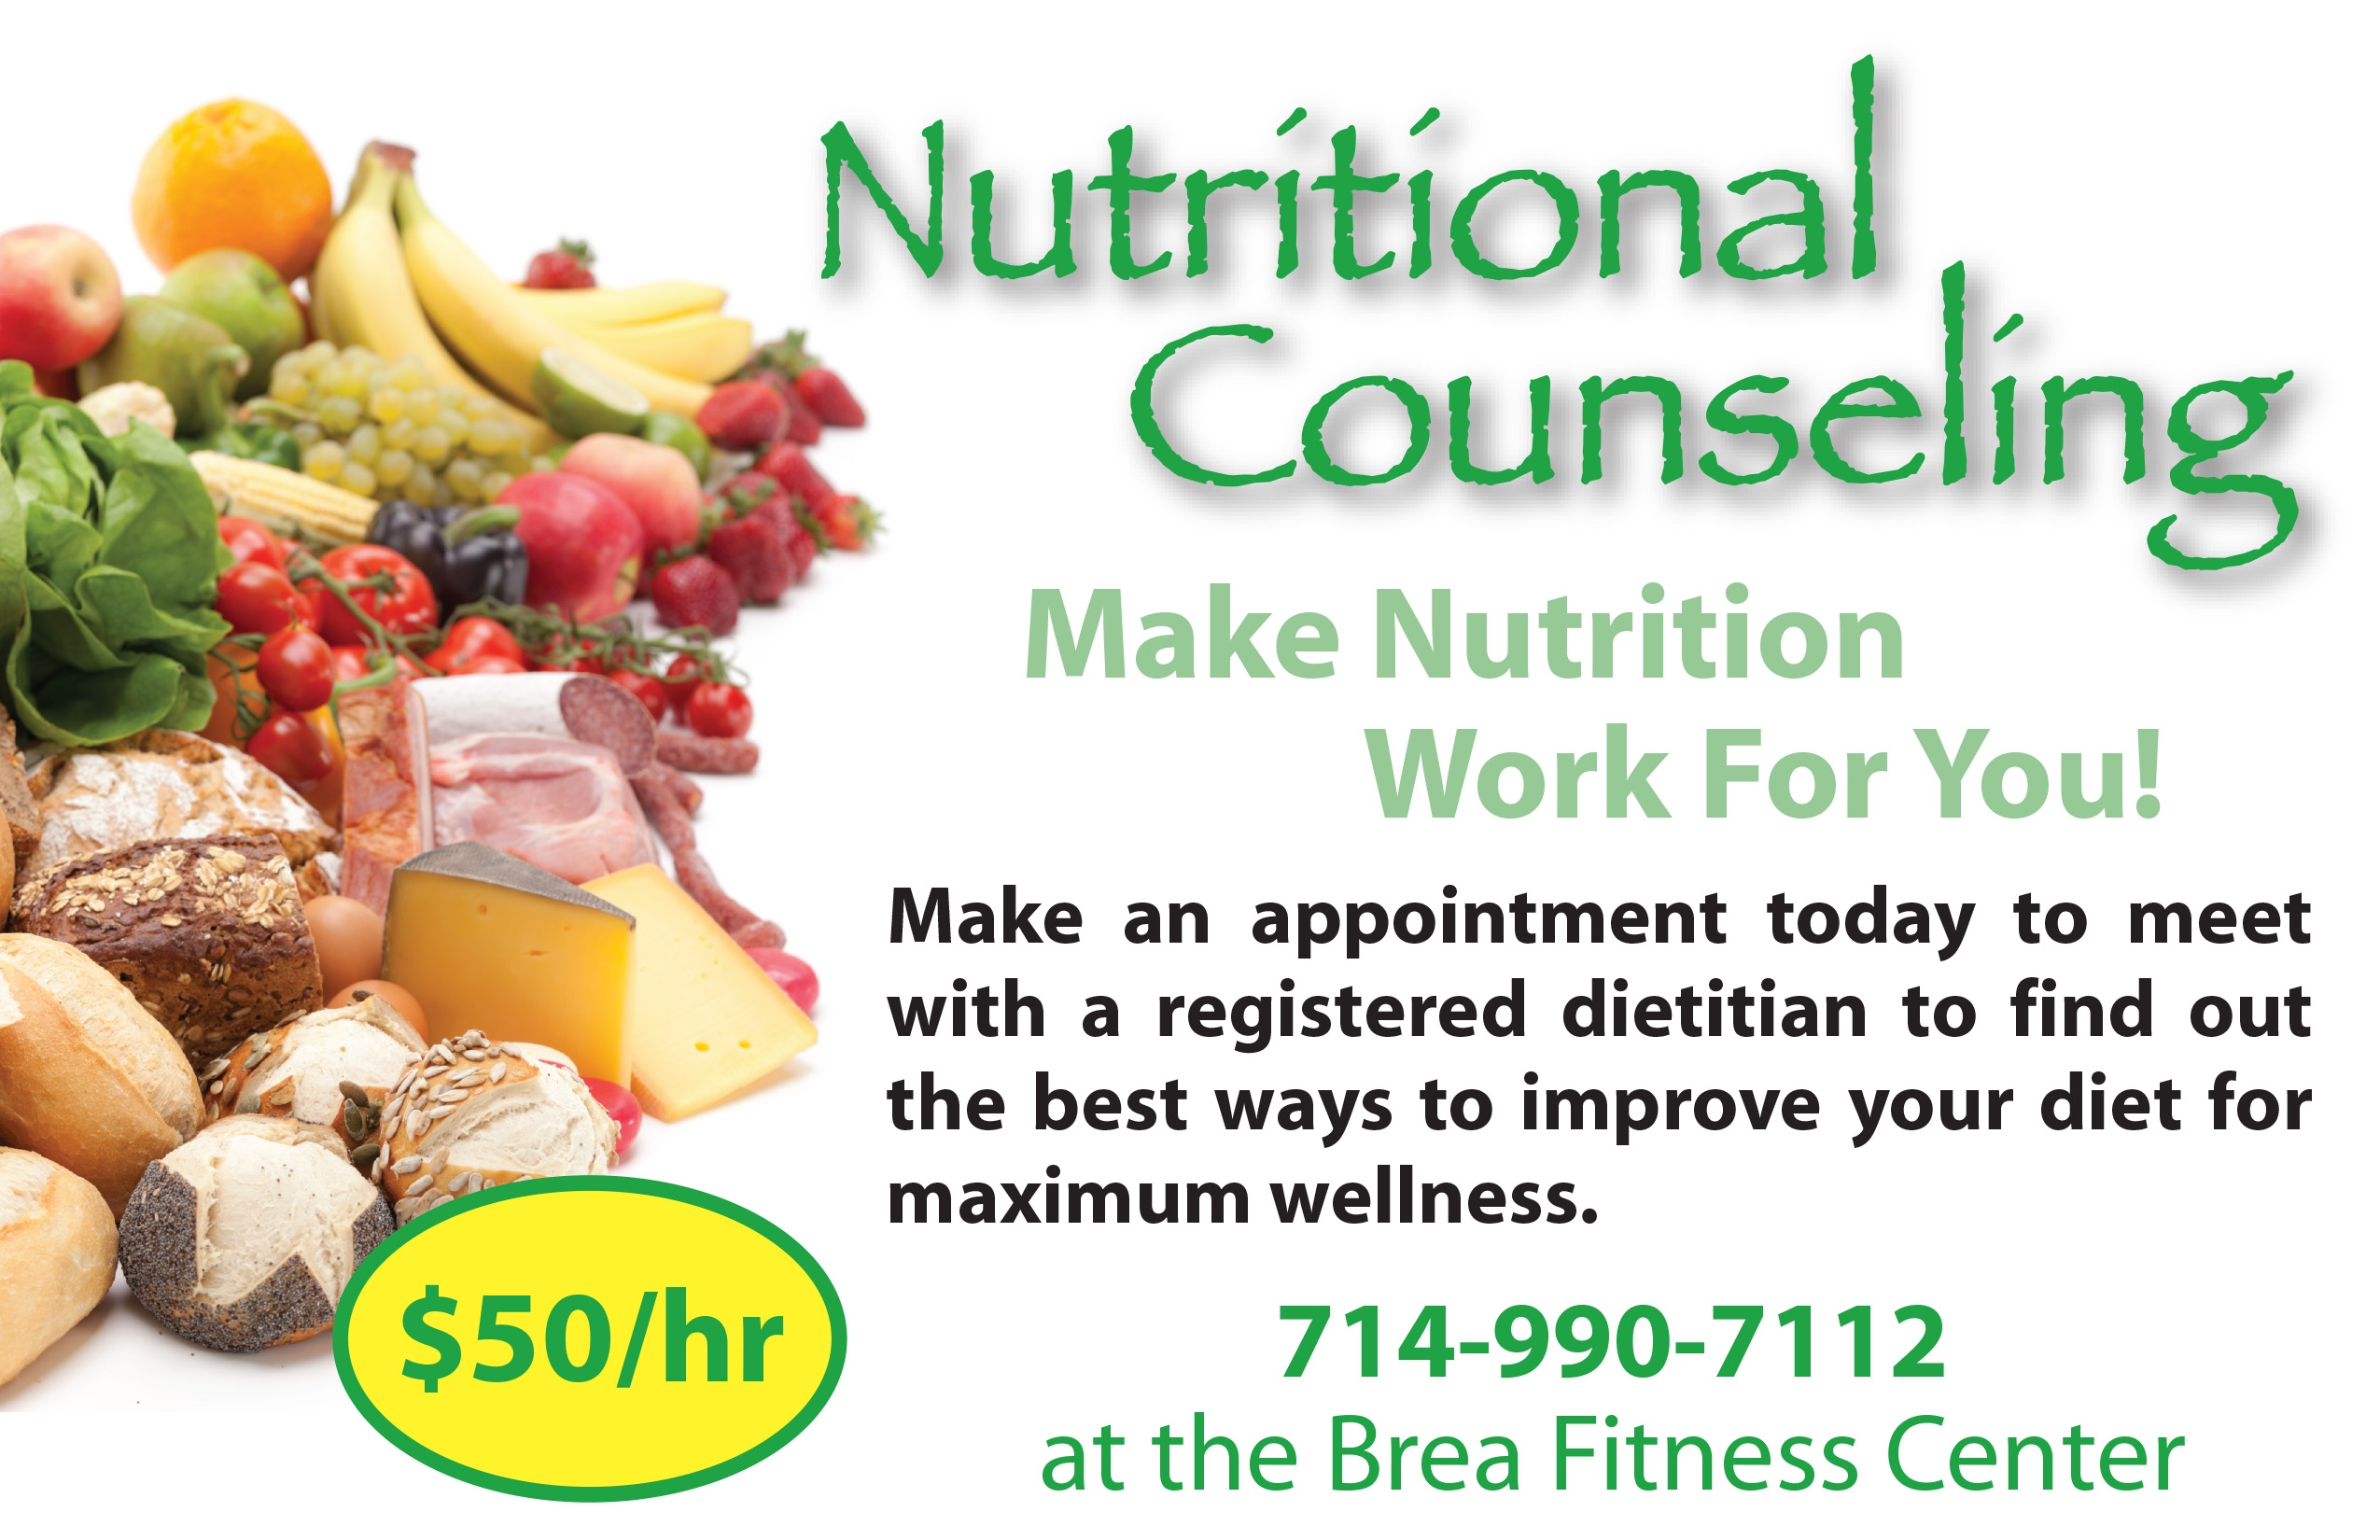 Nutrition Counseling available at the Brea Fitness Center